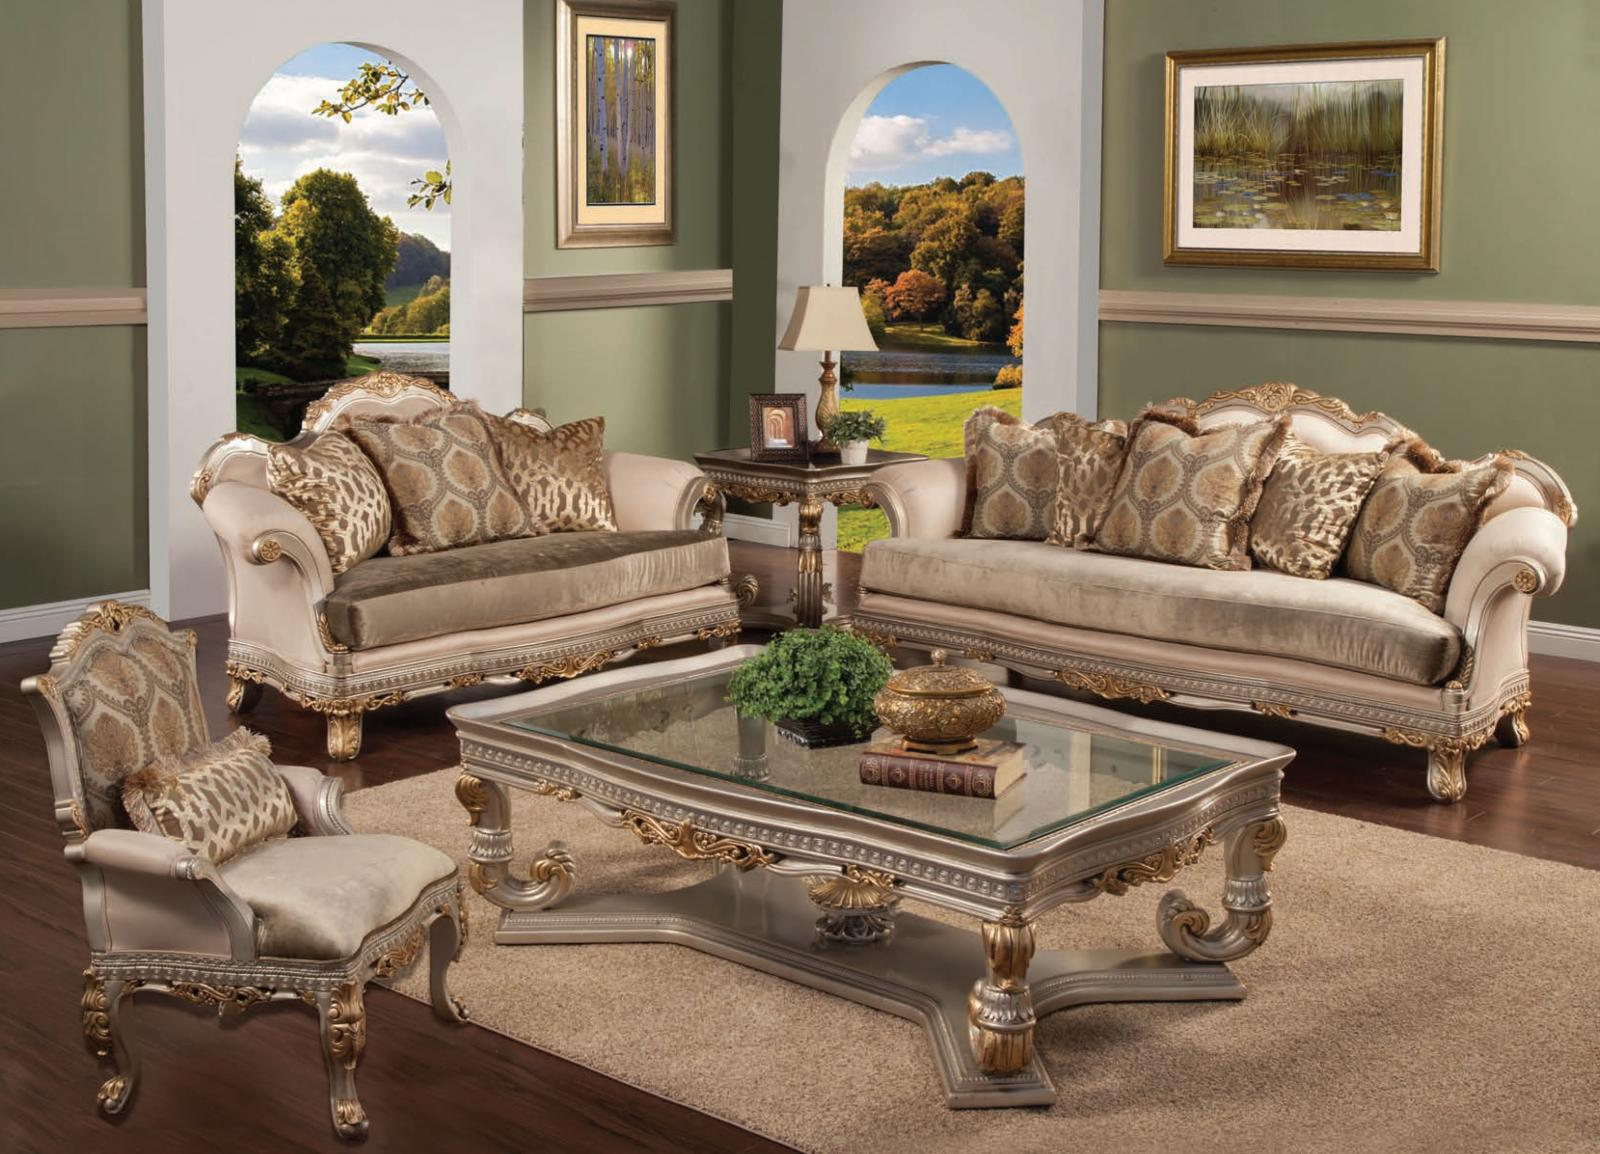 Bennetti Luxury Silk Chenille Silver Gold Wood Sofa Set 4P Ornella Sofa Loveseat Chair Cocktail Table Classic Traditional